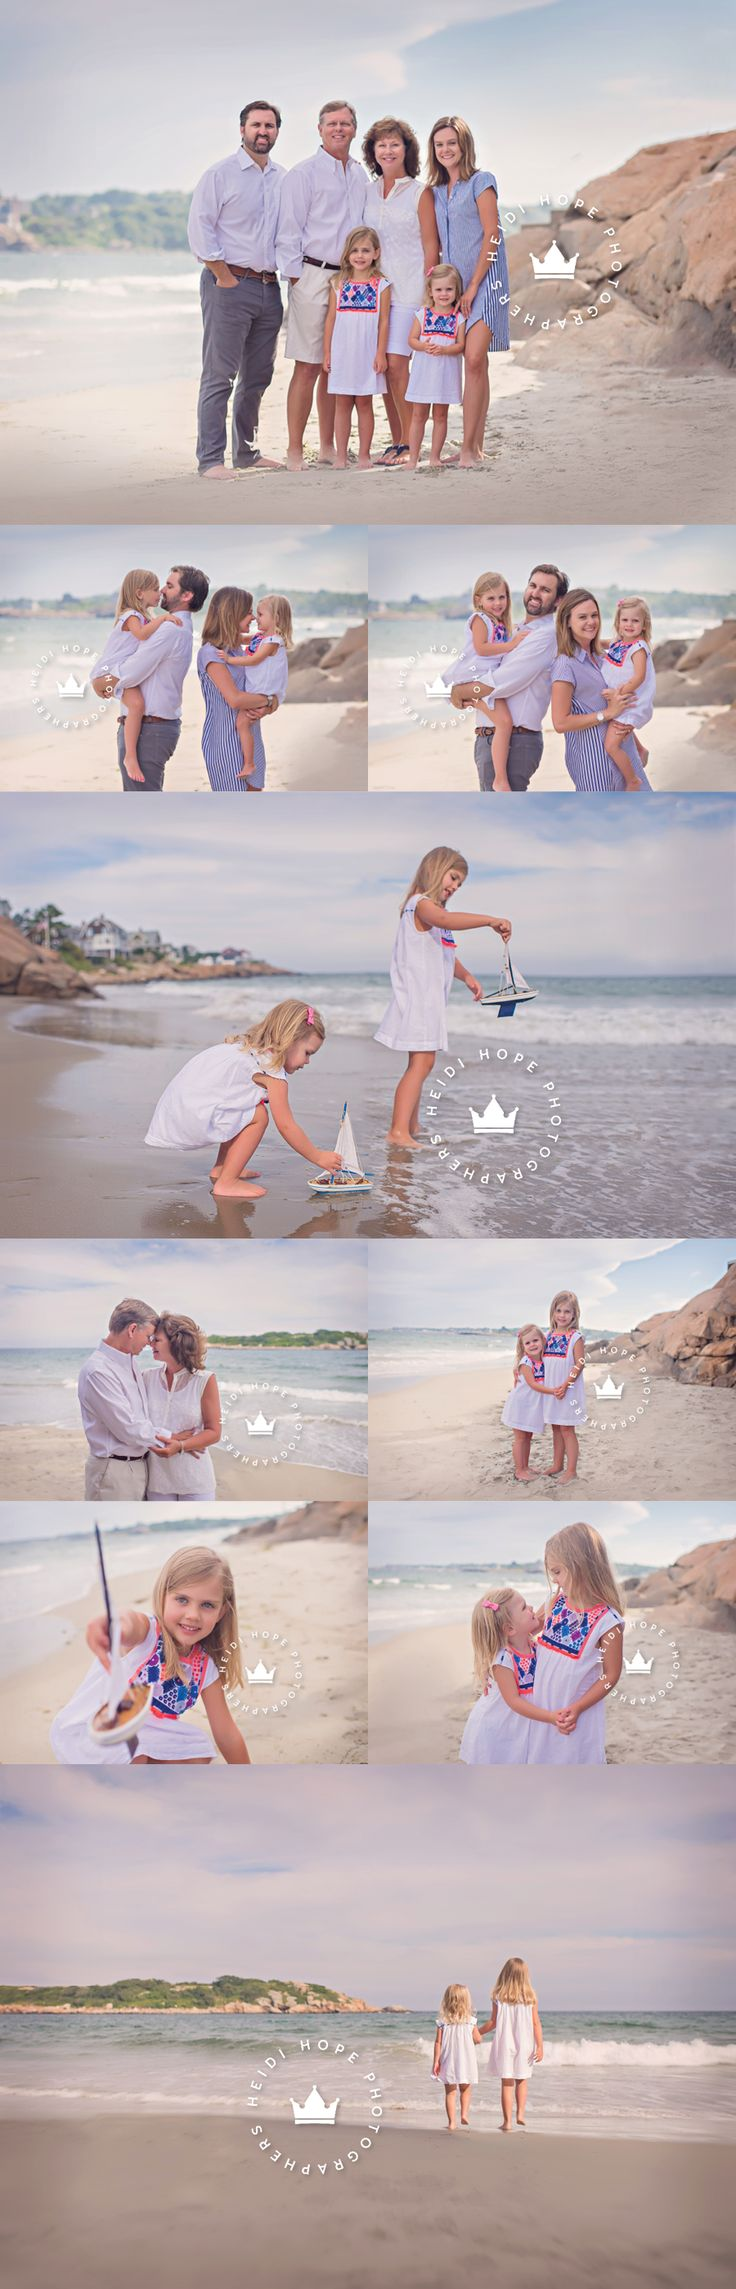 Blog | Heidi Hope Photography Extended family session with sweet sisters on beautiful Massachusetts beach where generations have spent their summers.